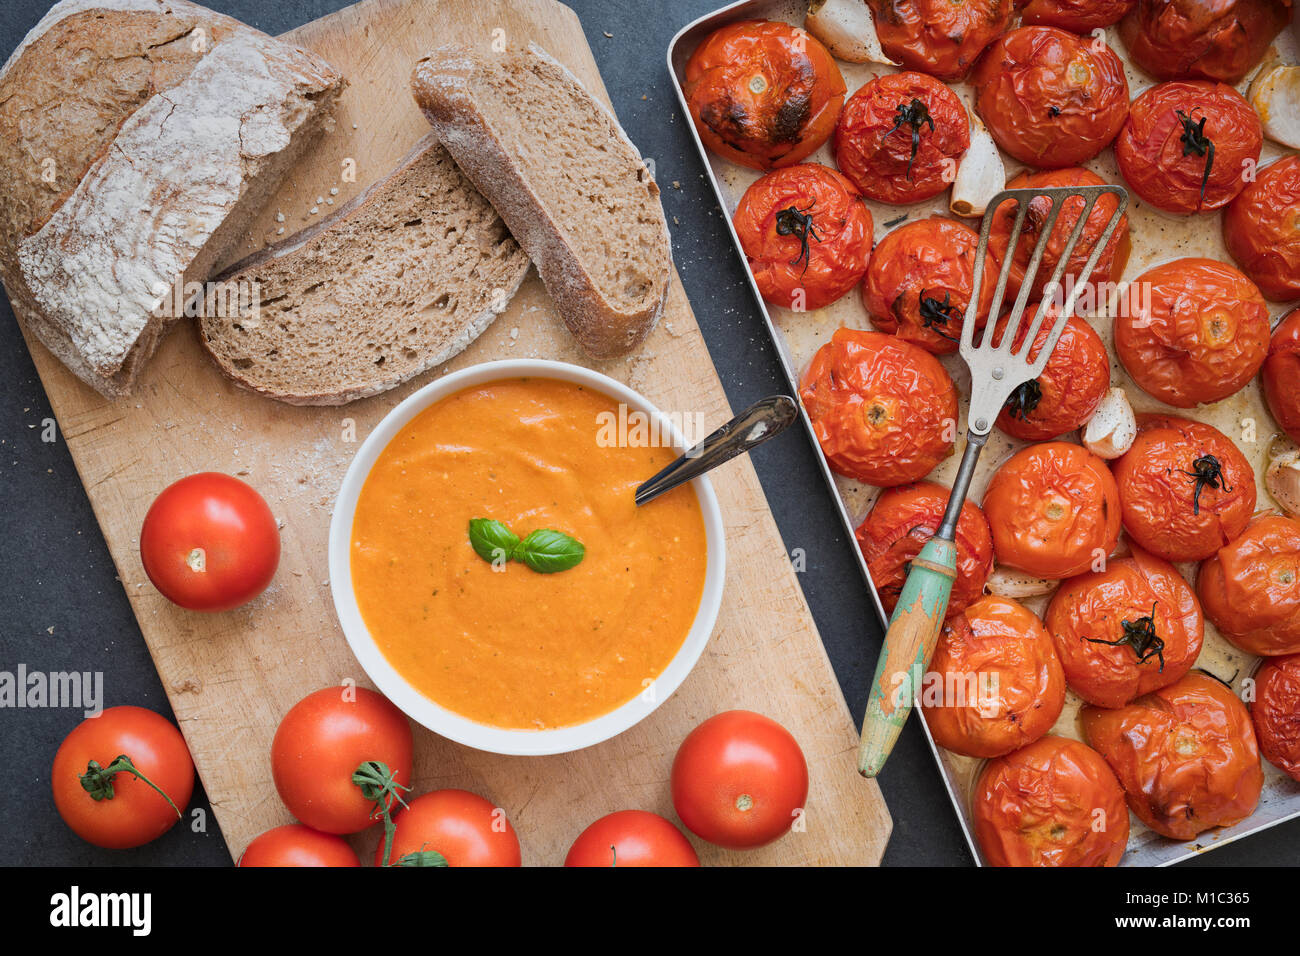 Homemade tomato and basil soup with rye bread next to roasted tomatoes and garlic in a baking tray on a slate background. - Stock Image